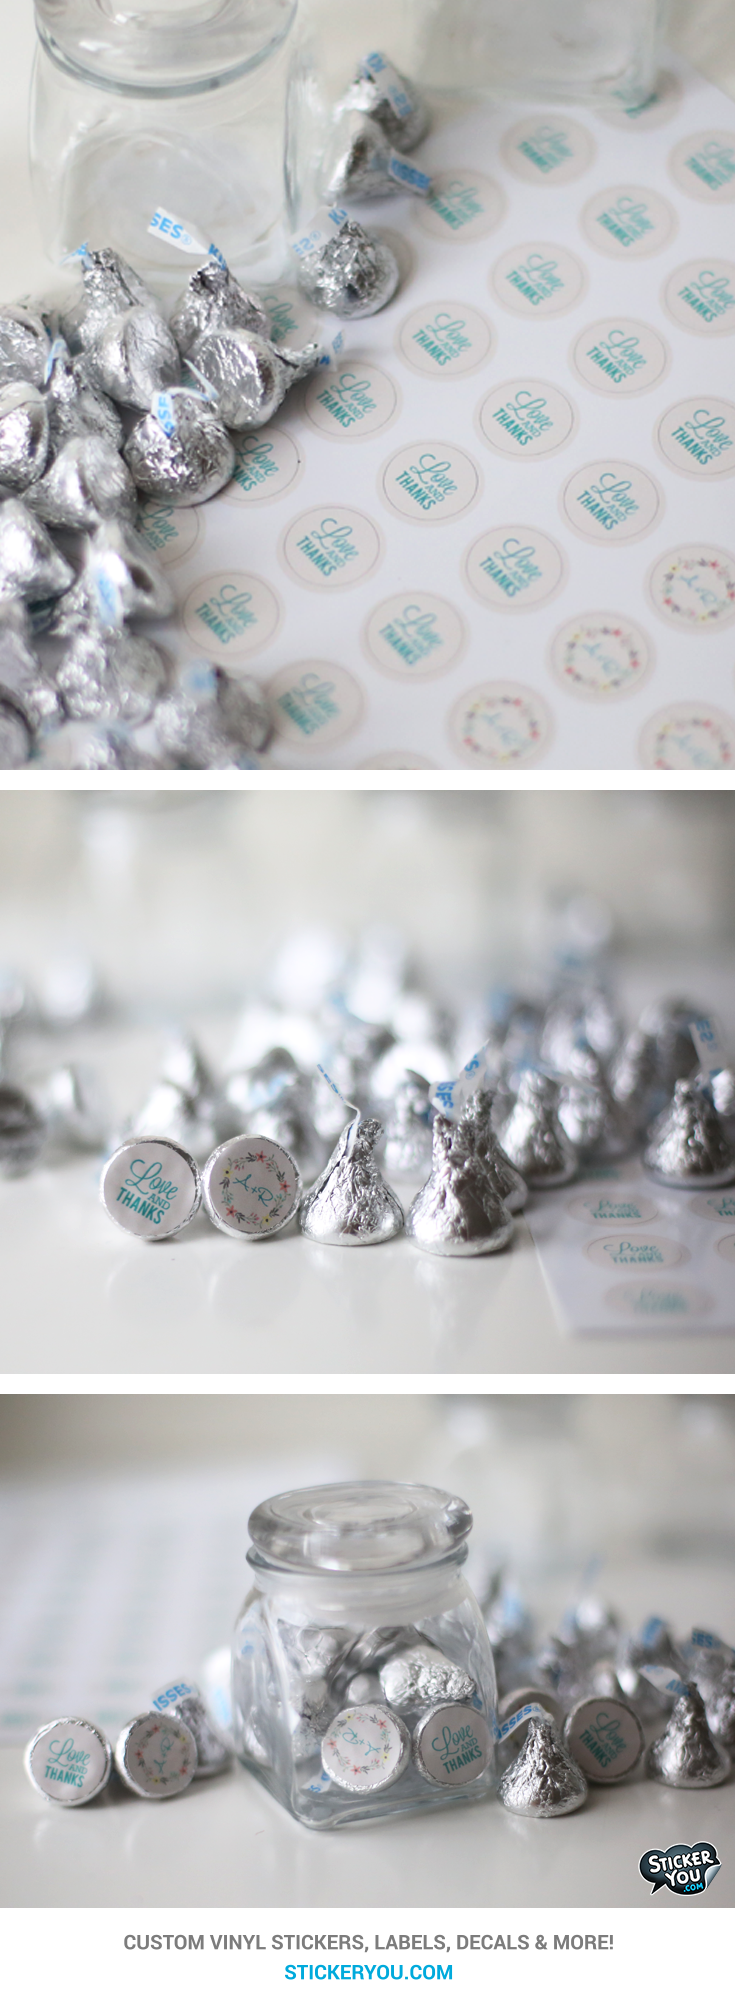 Candy Labels   Favours, Candy labels and Wedding